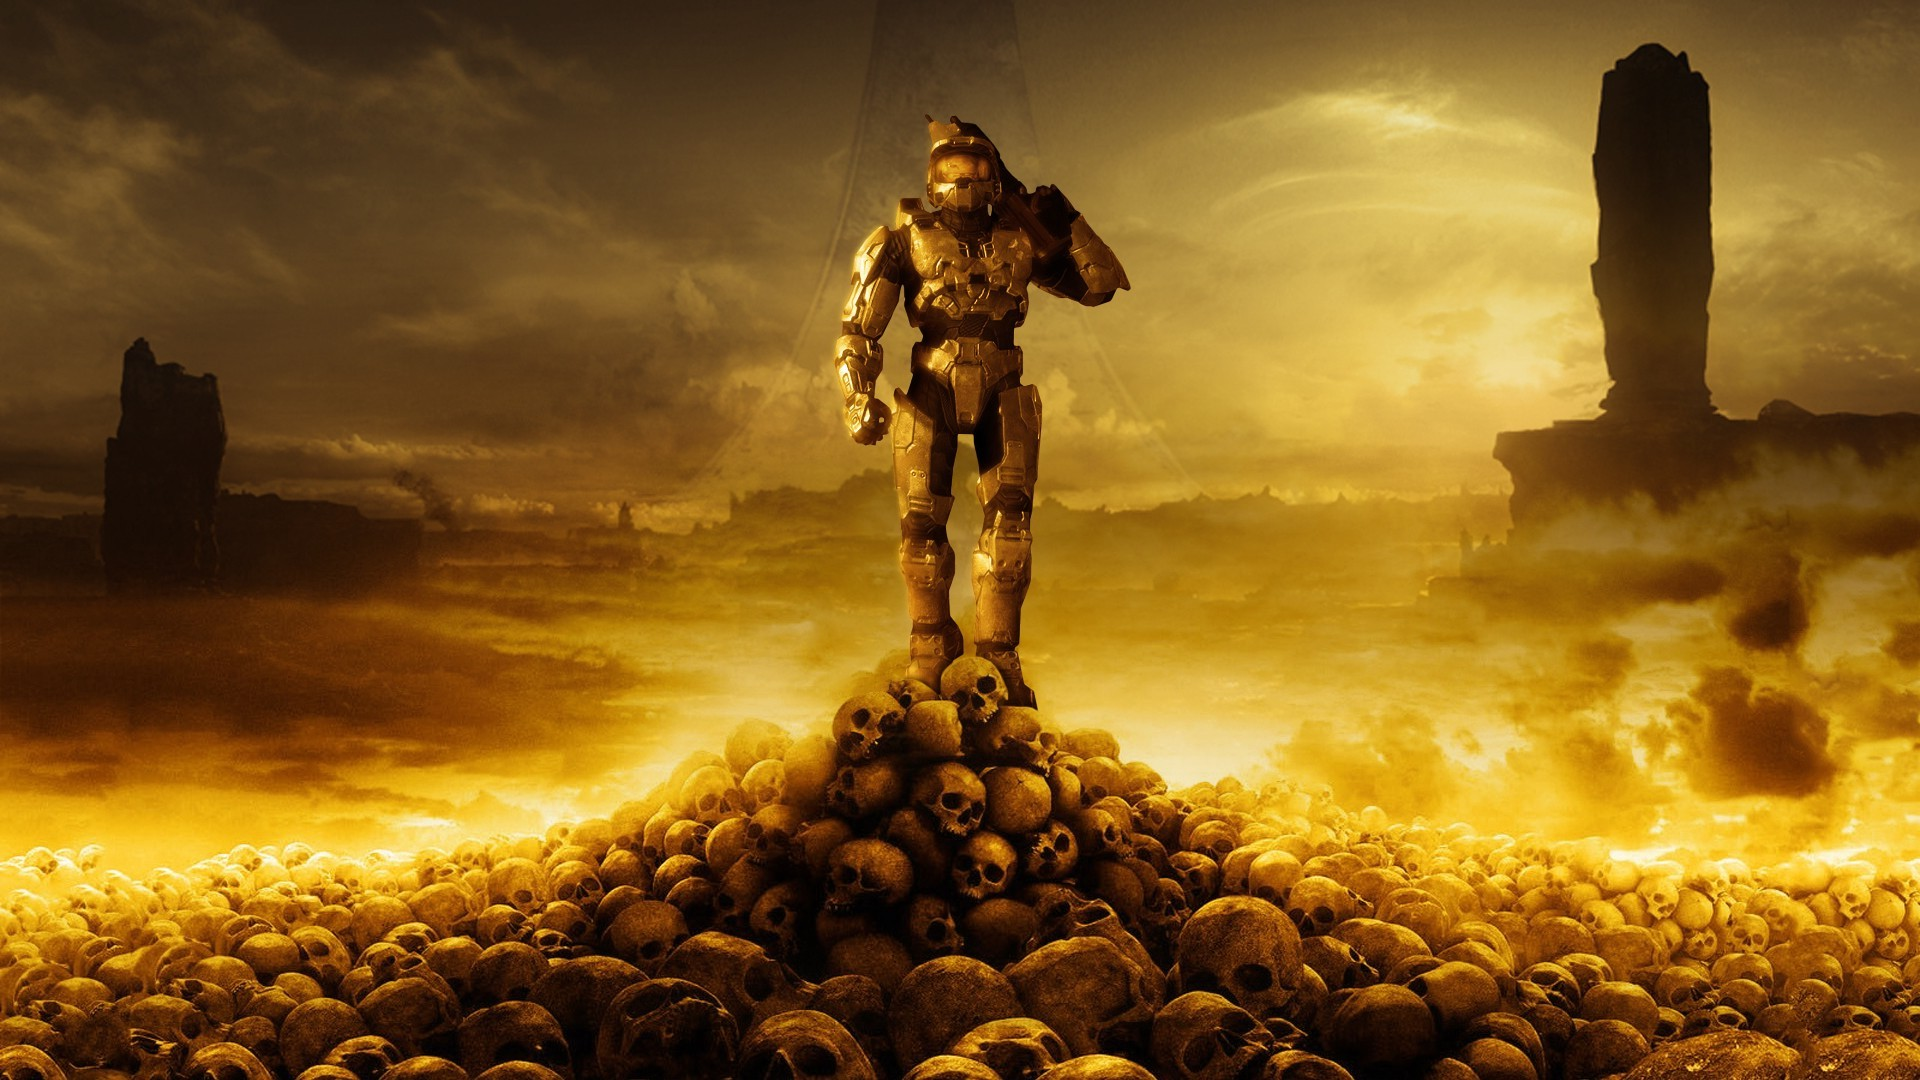 halo 3 wallpaper ·① download free beautiful full hd backgrounds for